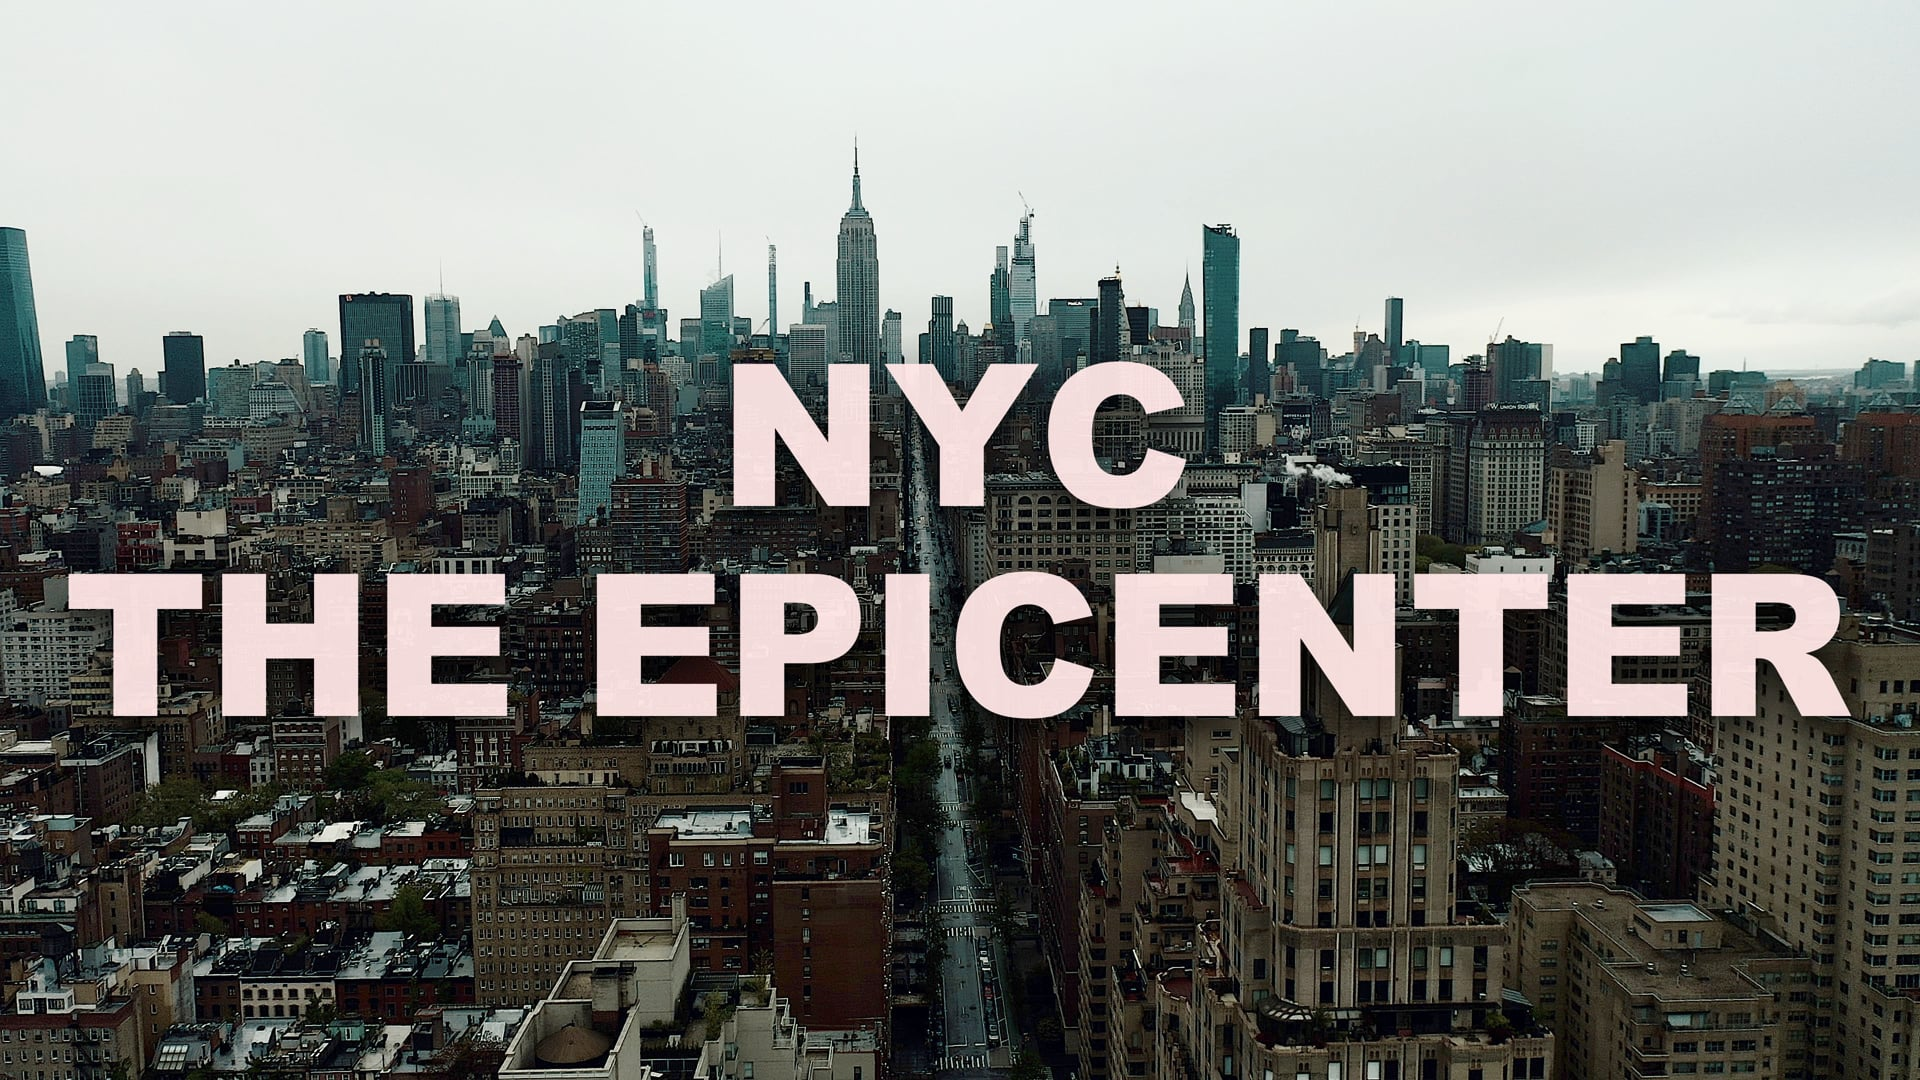 NYC, The Epicenter 2020